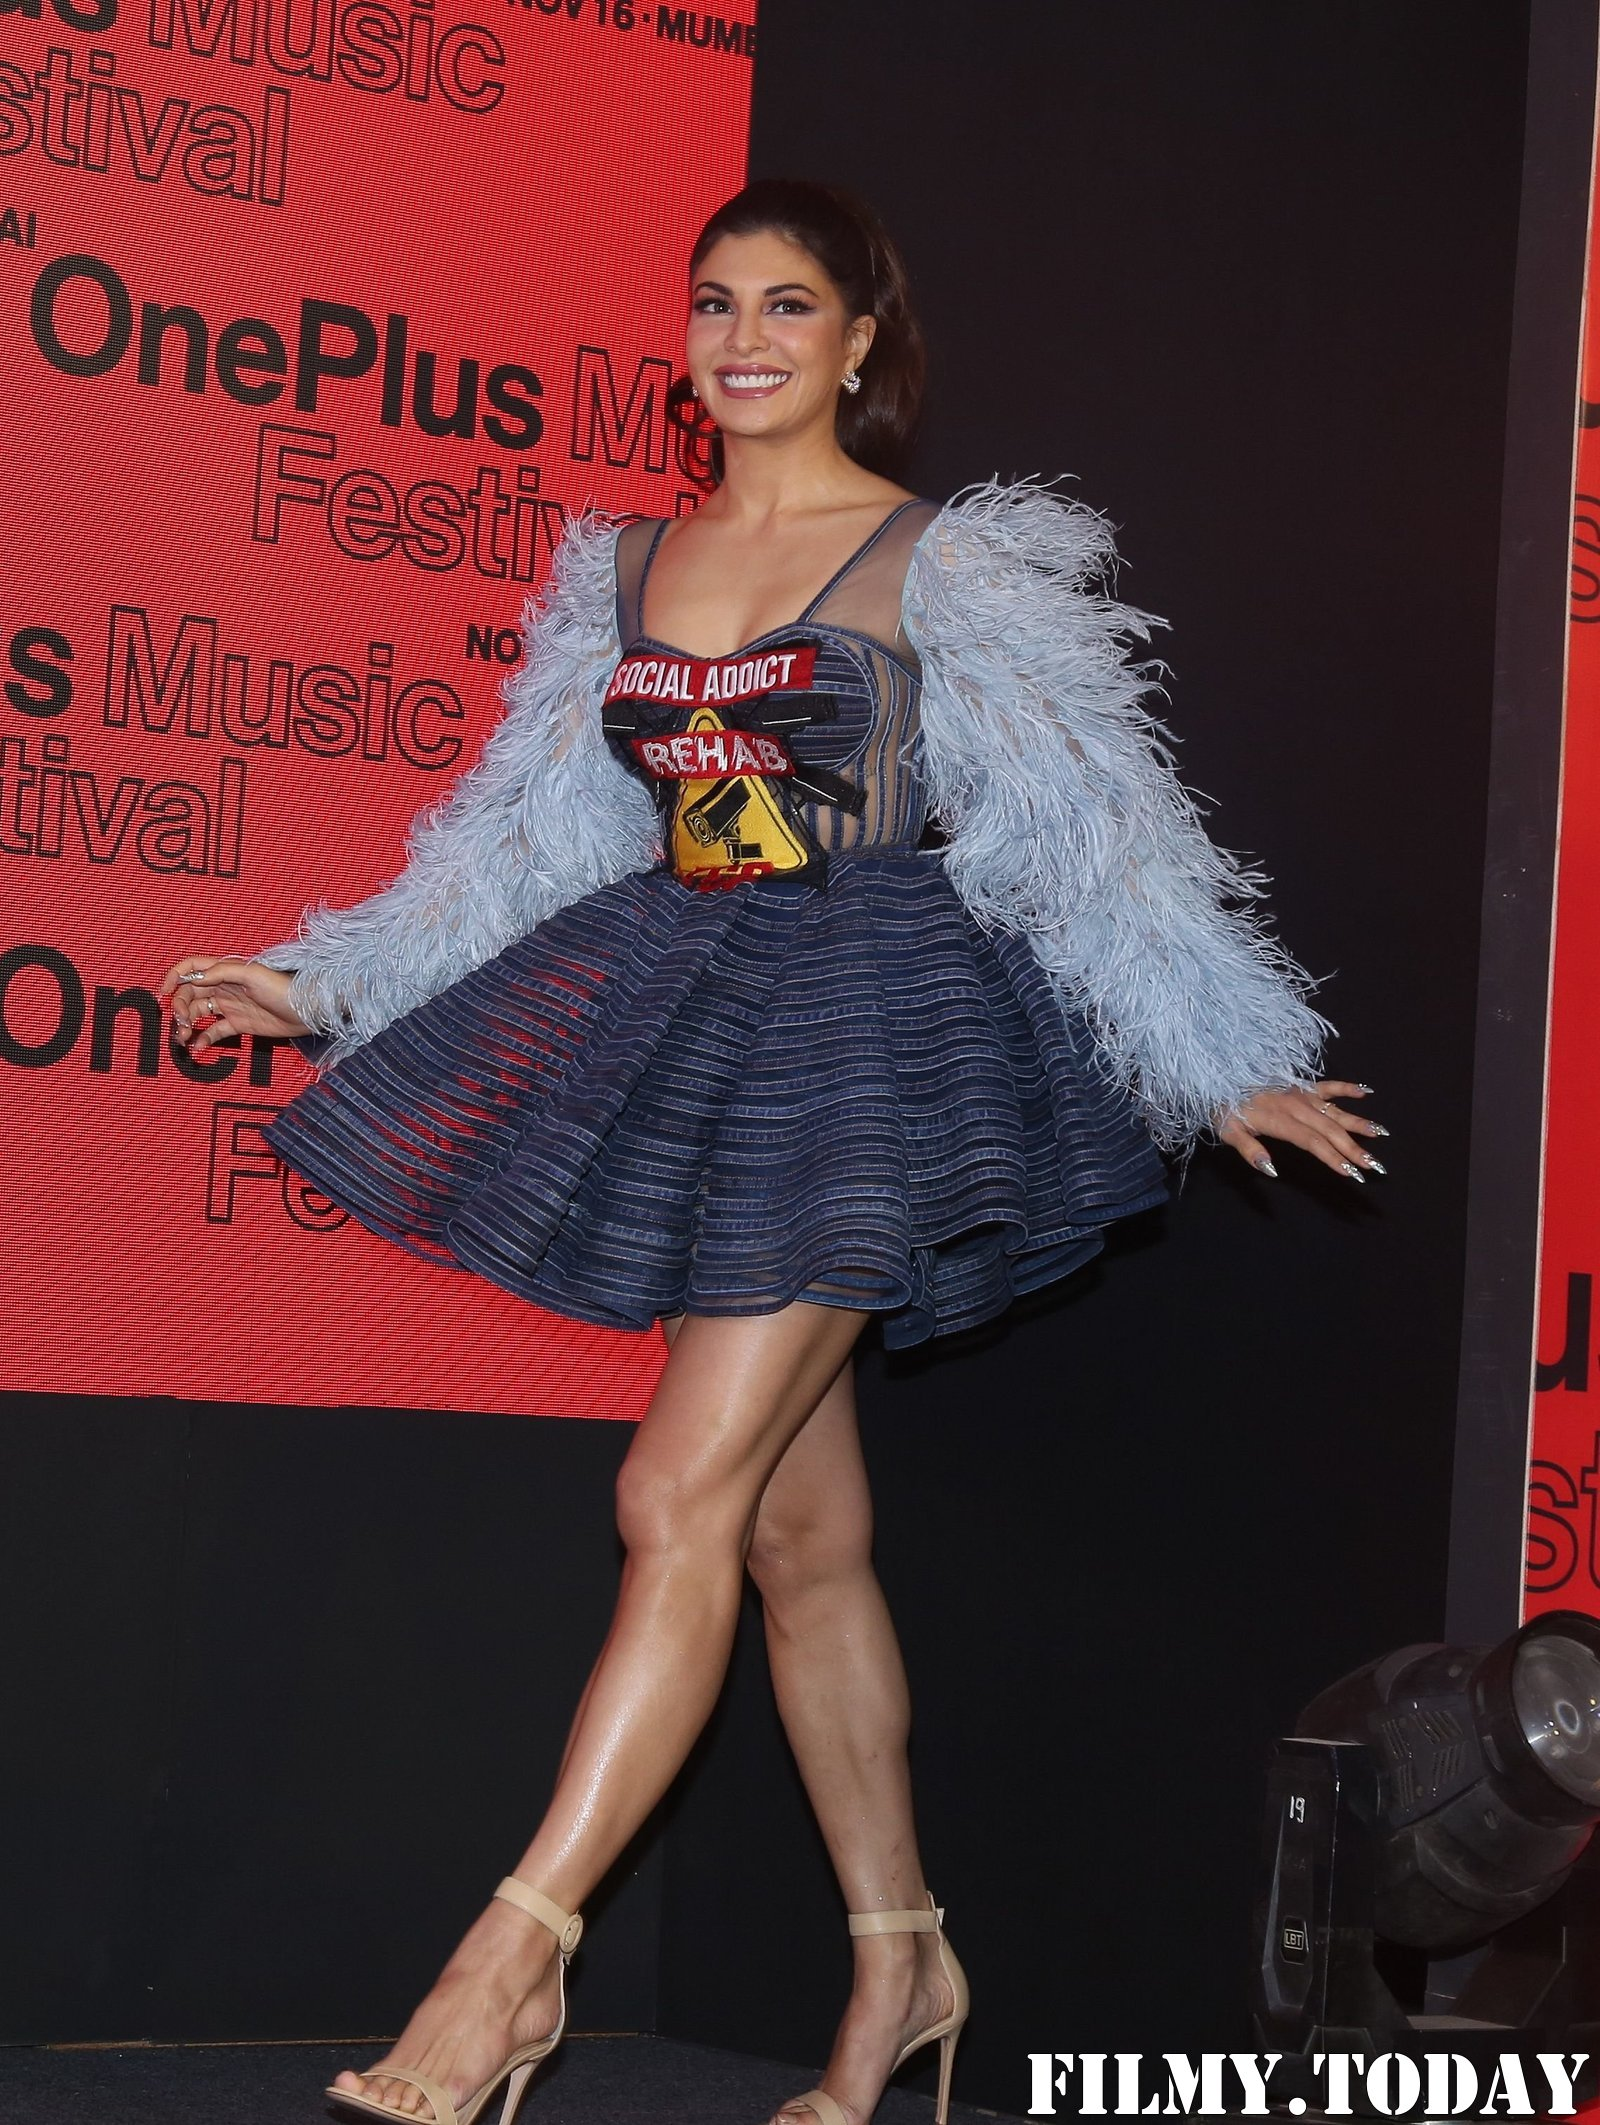 Jacqueline Fernandez - Photos: Press Conference Of One Plus Music Concert At St Regis | Picture 1697925